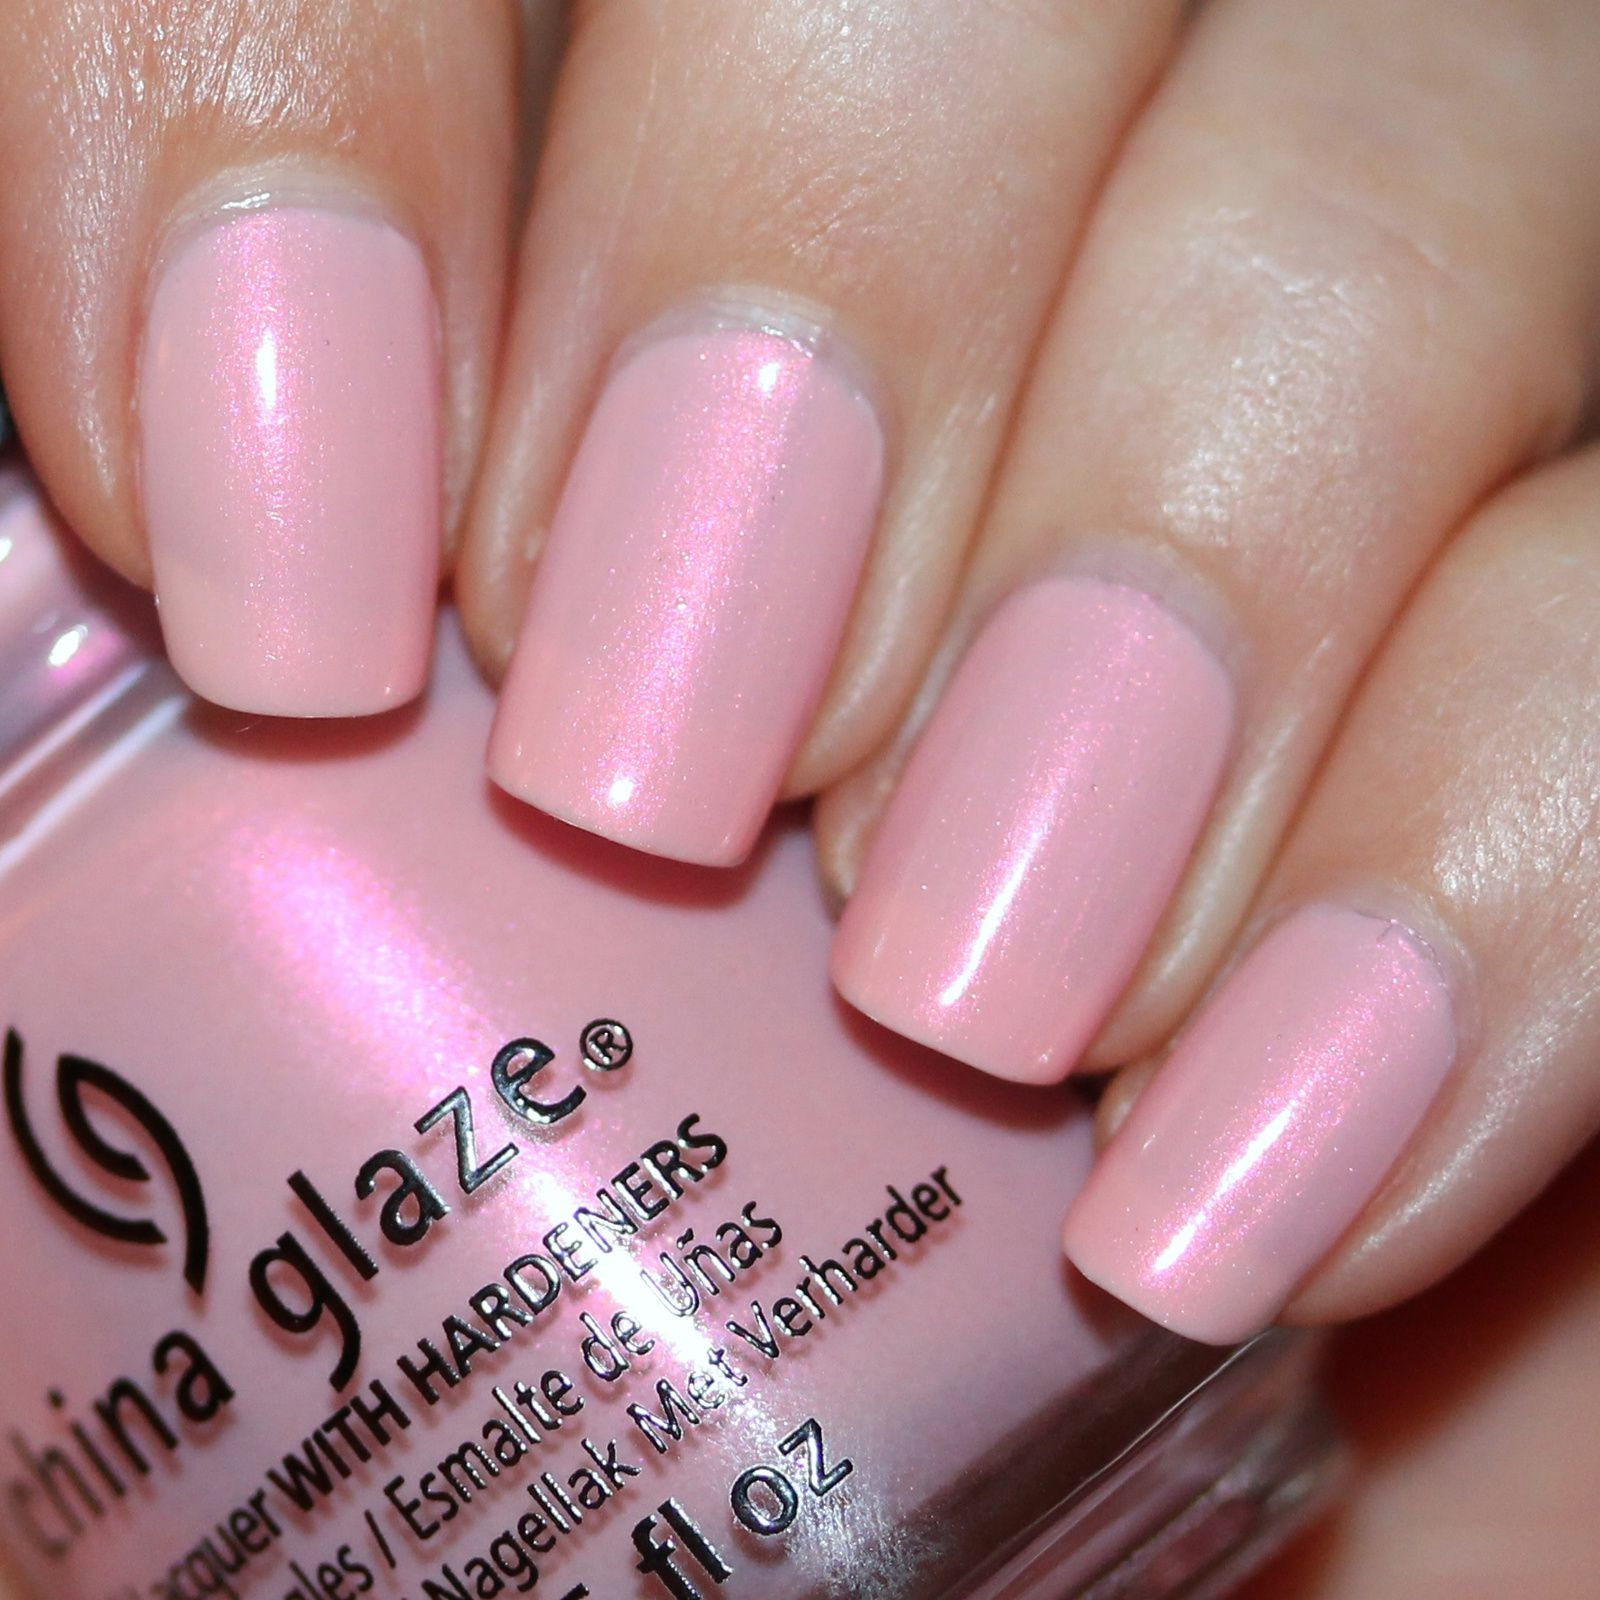 Essie Protein Base Coat / China Glaze Eat, Pink, Be Merry / Poshe Top Coat